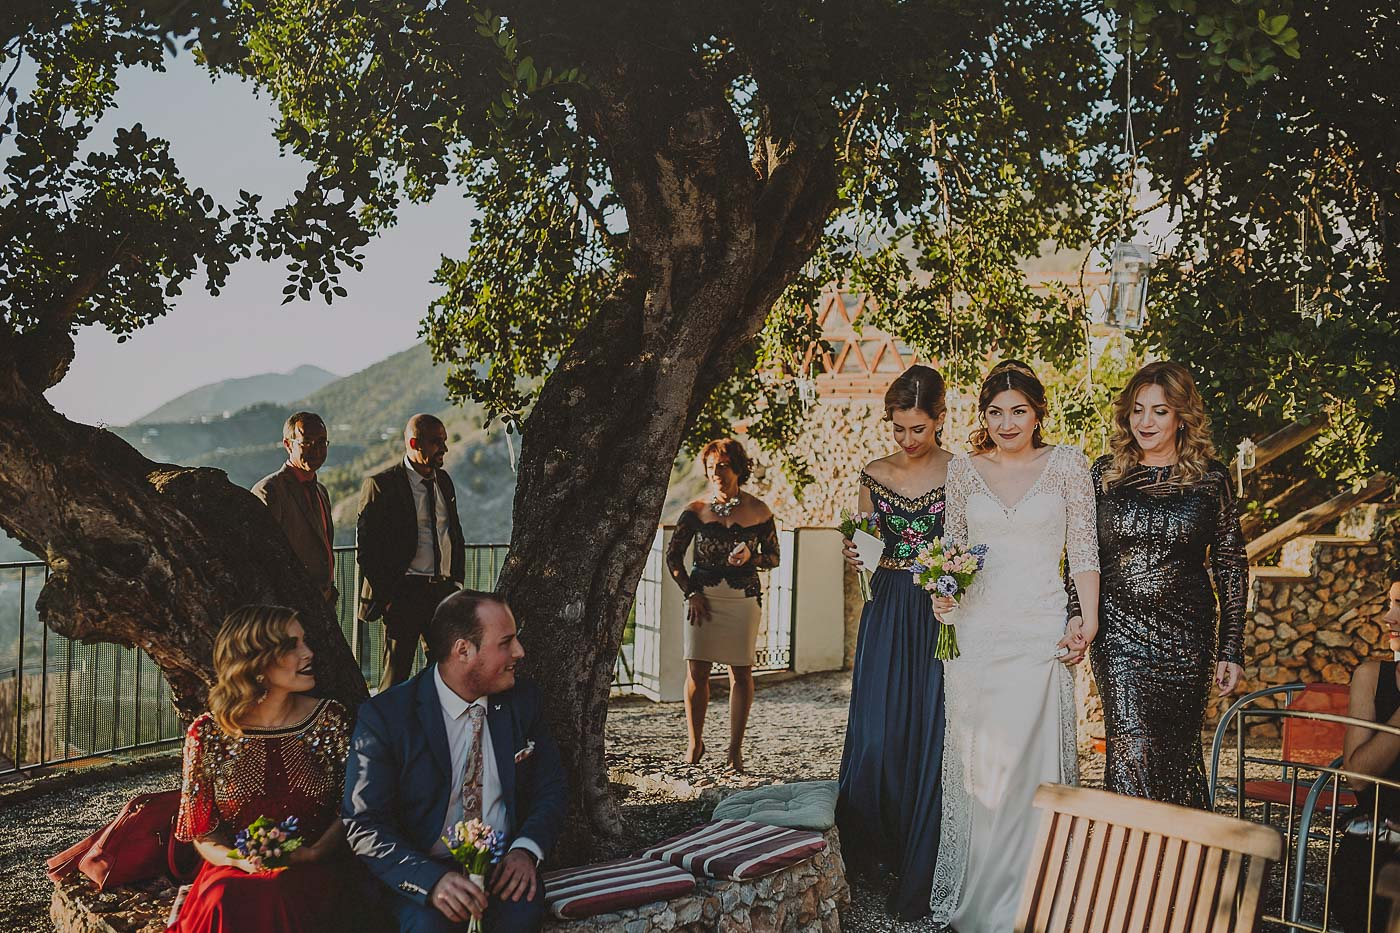 Boda en Frigiliana Ceremonia